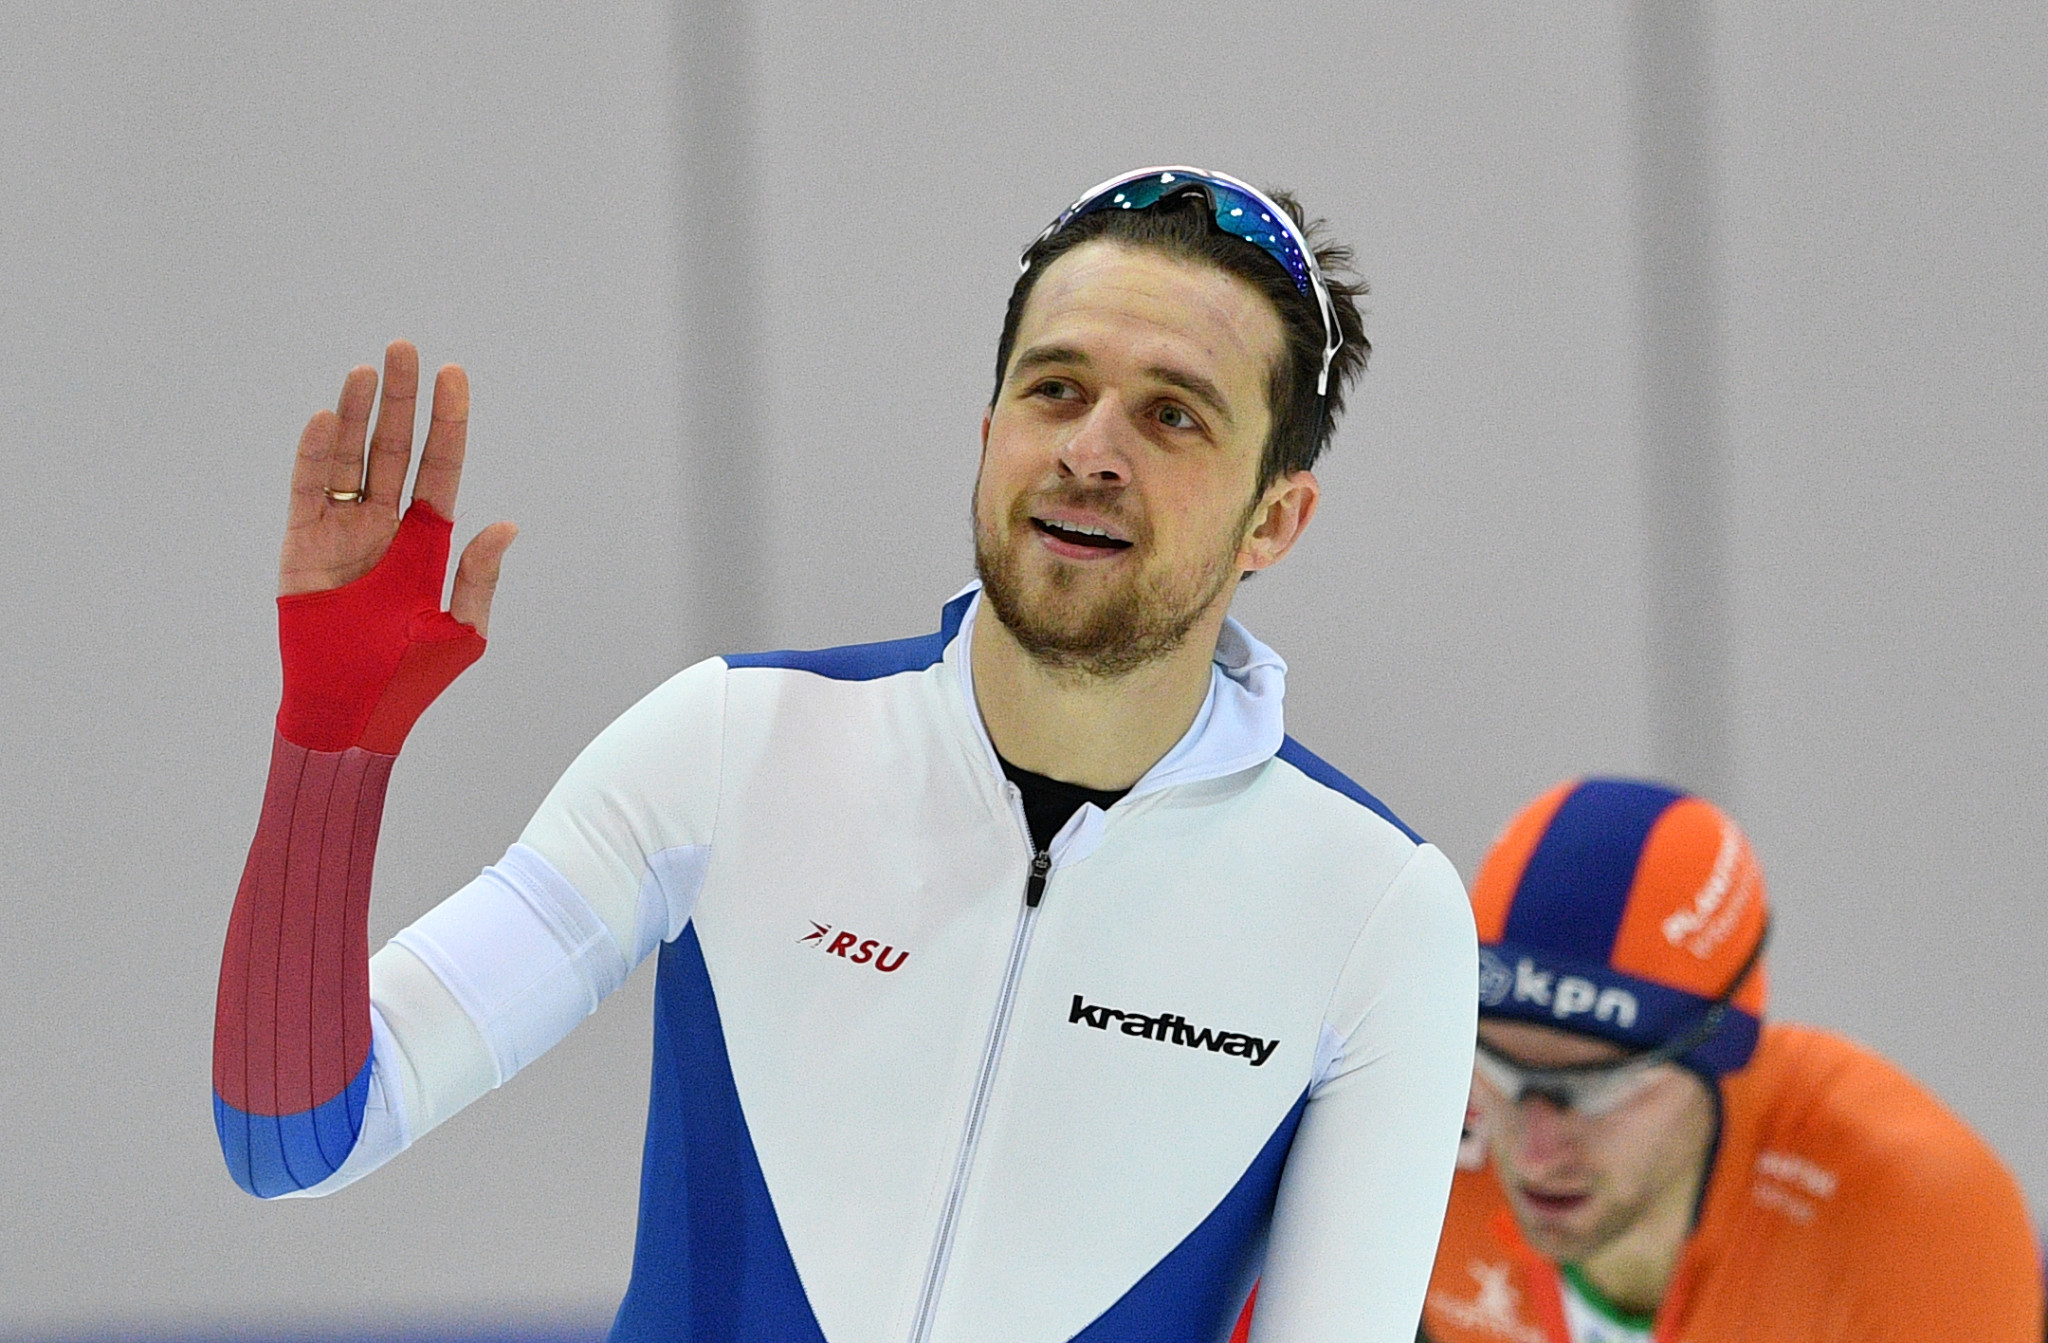 Denis Yuskov has also seemingly been ruled out of competing at Pyeongchang 2018 ©Getty Images